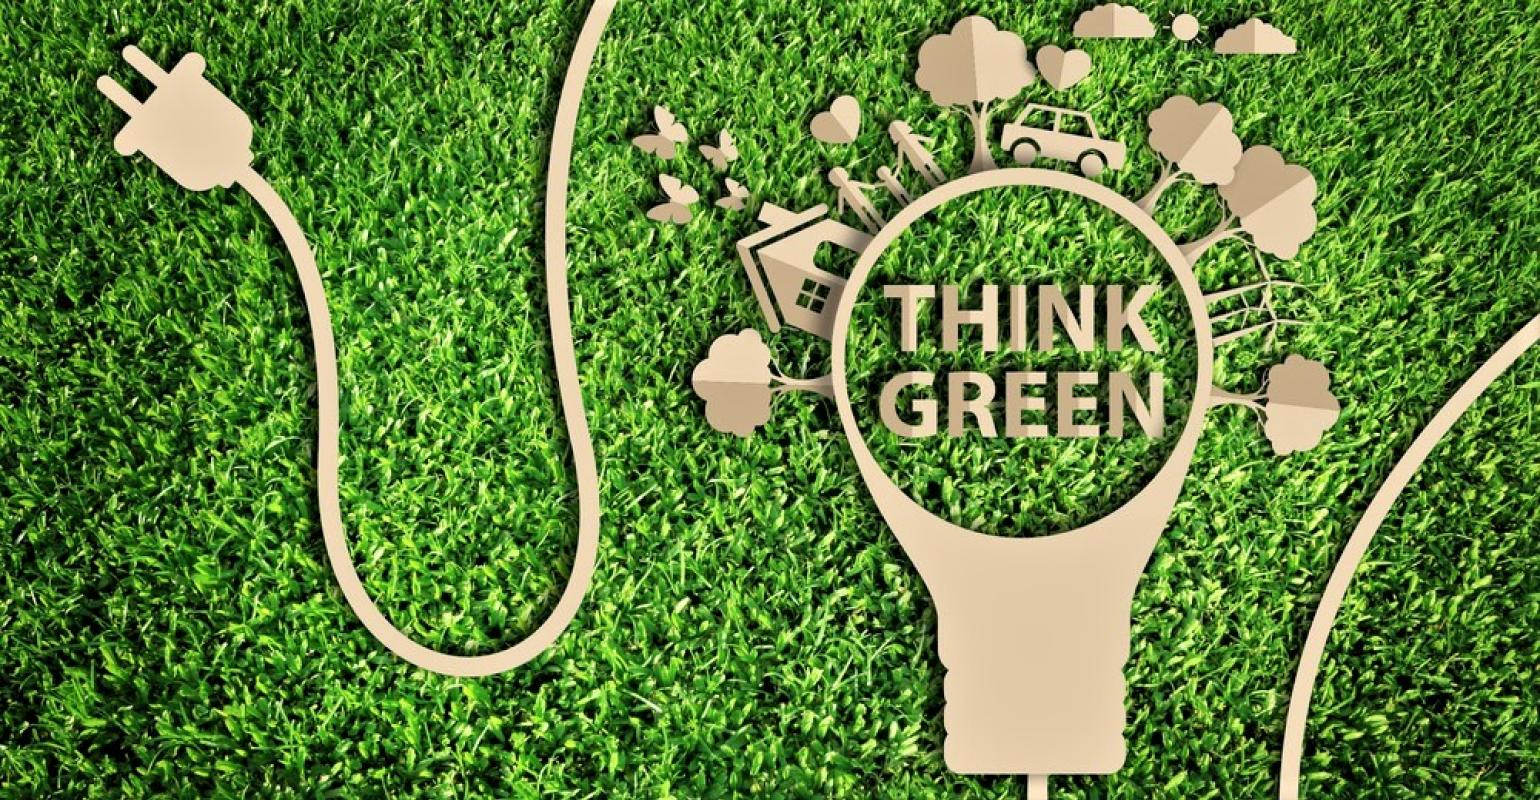 Differentiation Through Sustainability: Green Ideas for Self